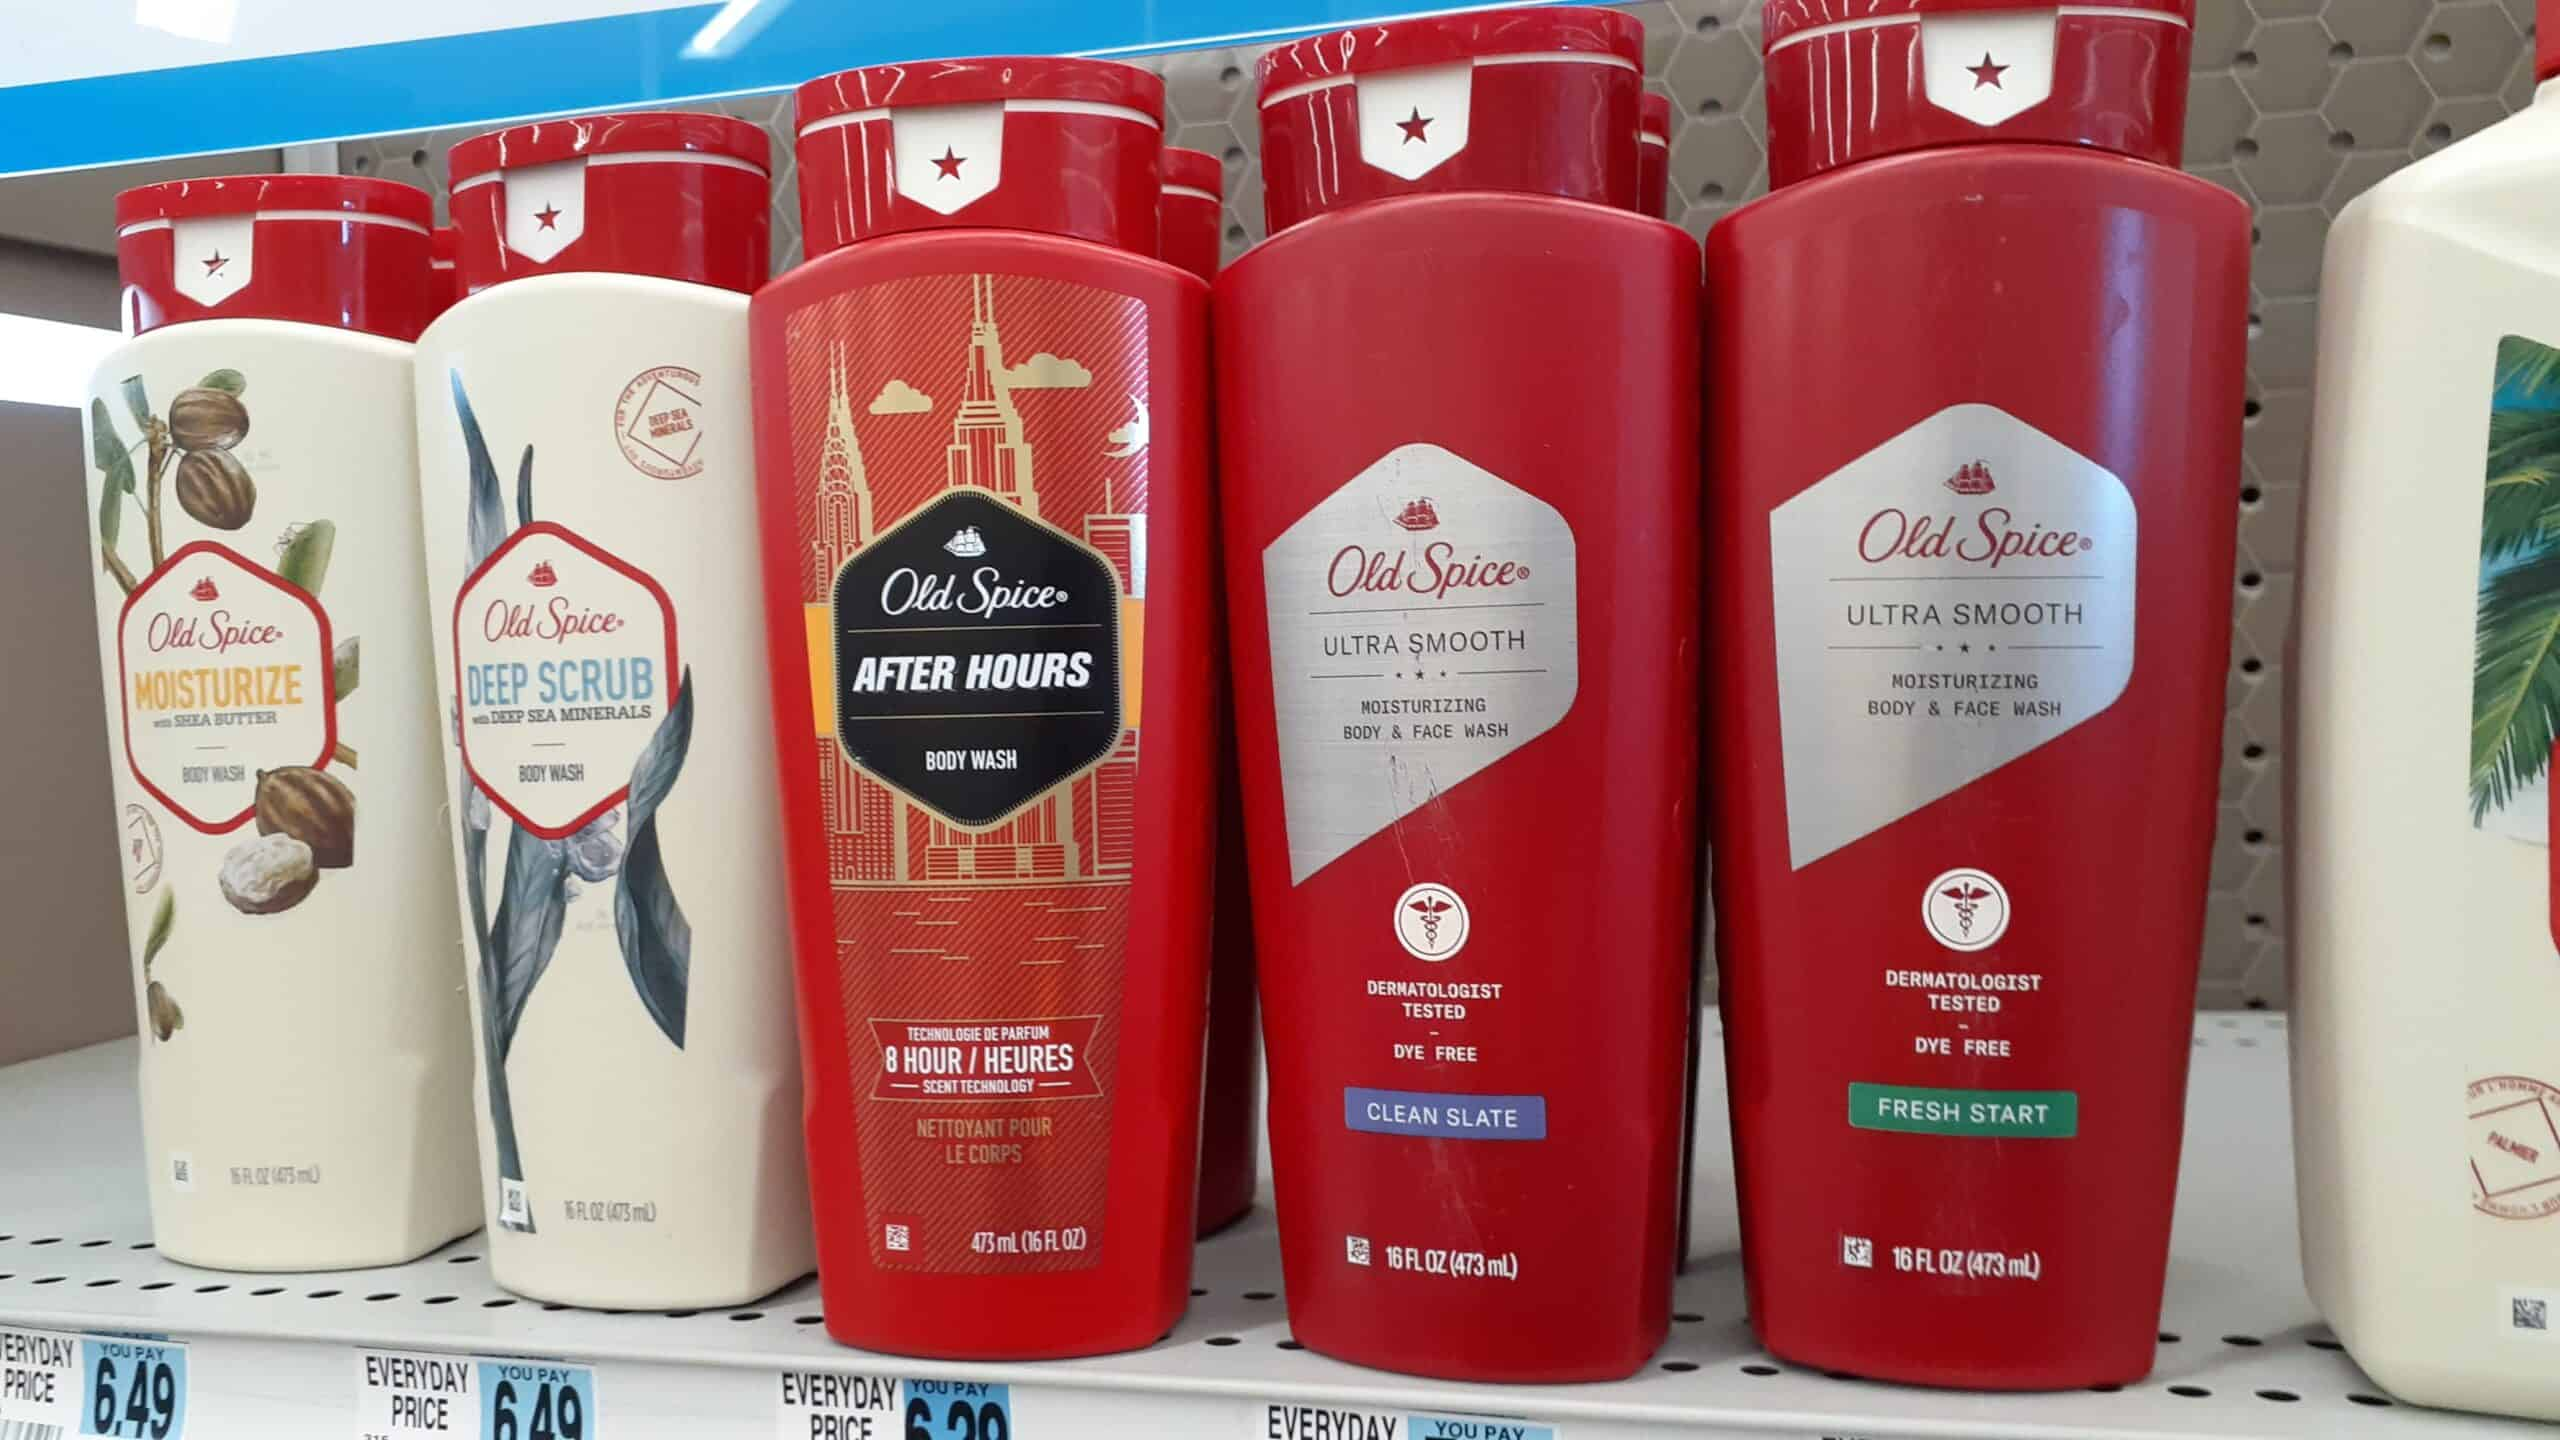 Old Spice Bodywash at Rite Aid